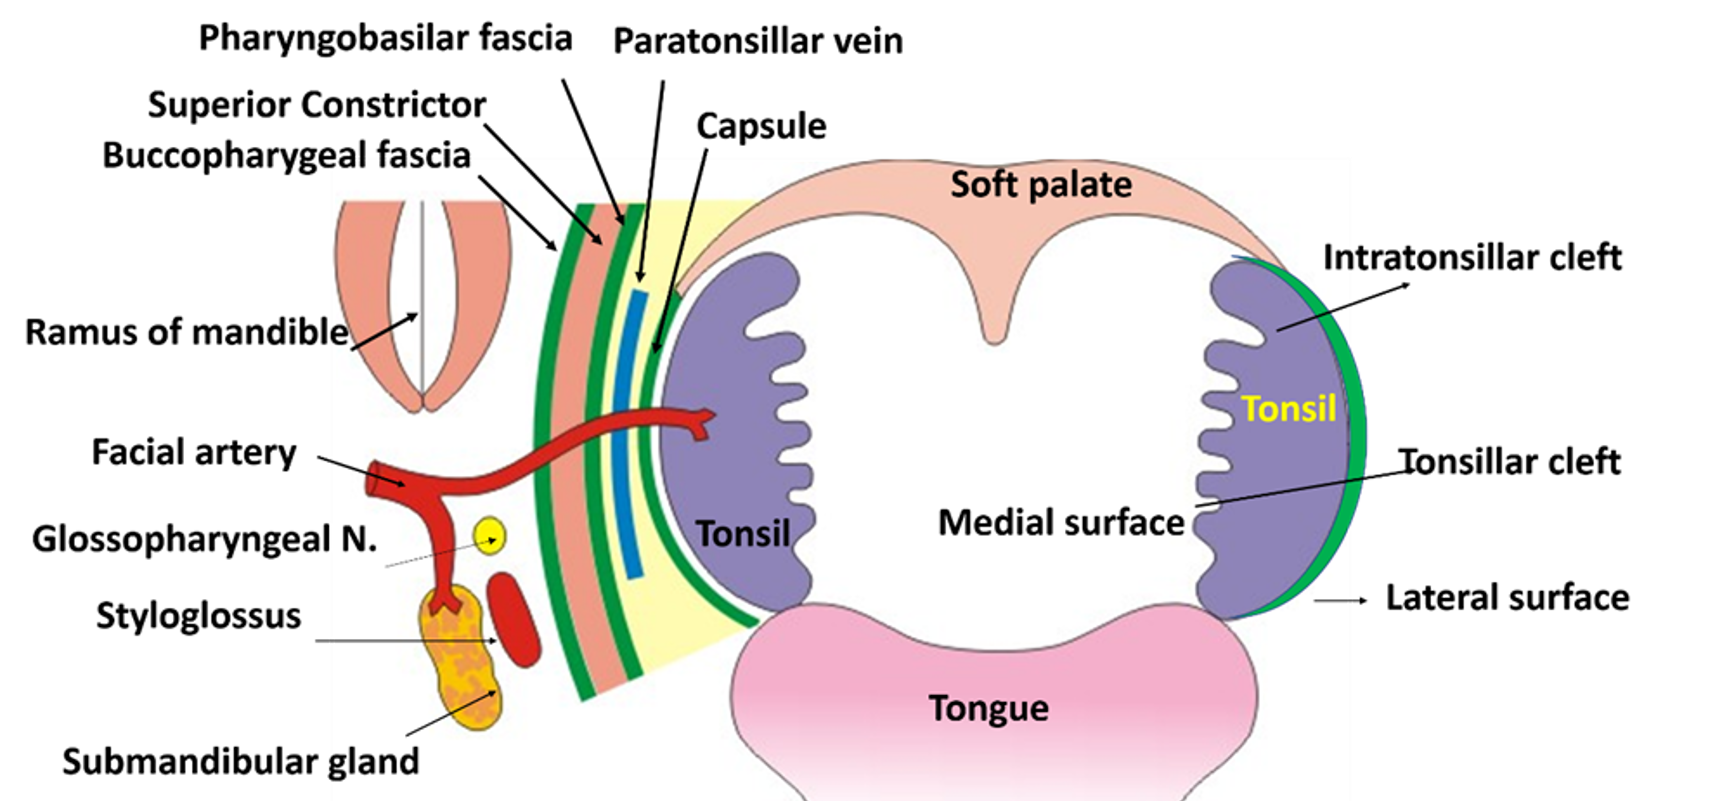 Luxury Anatomy Of The Tonsil Image Collection - Physiology Of Human ...